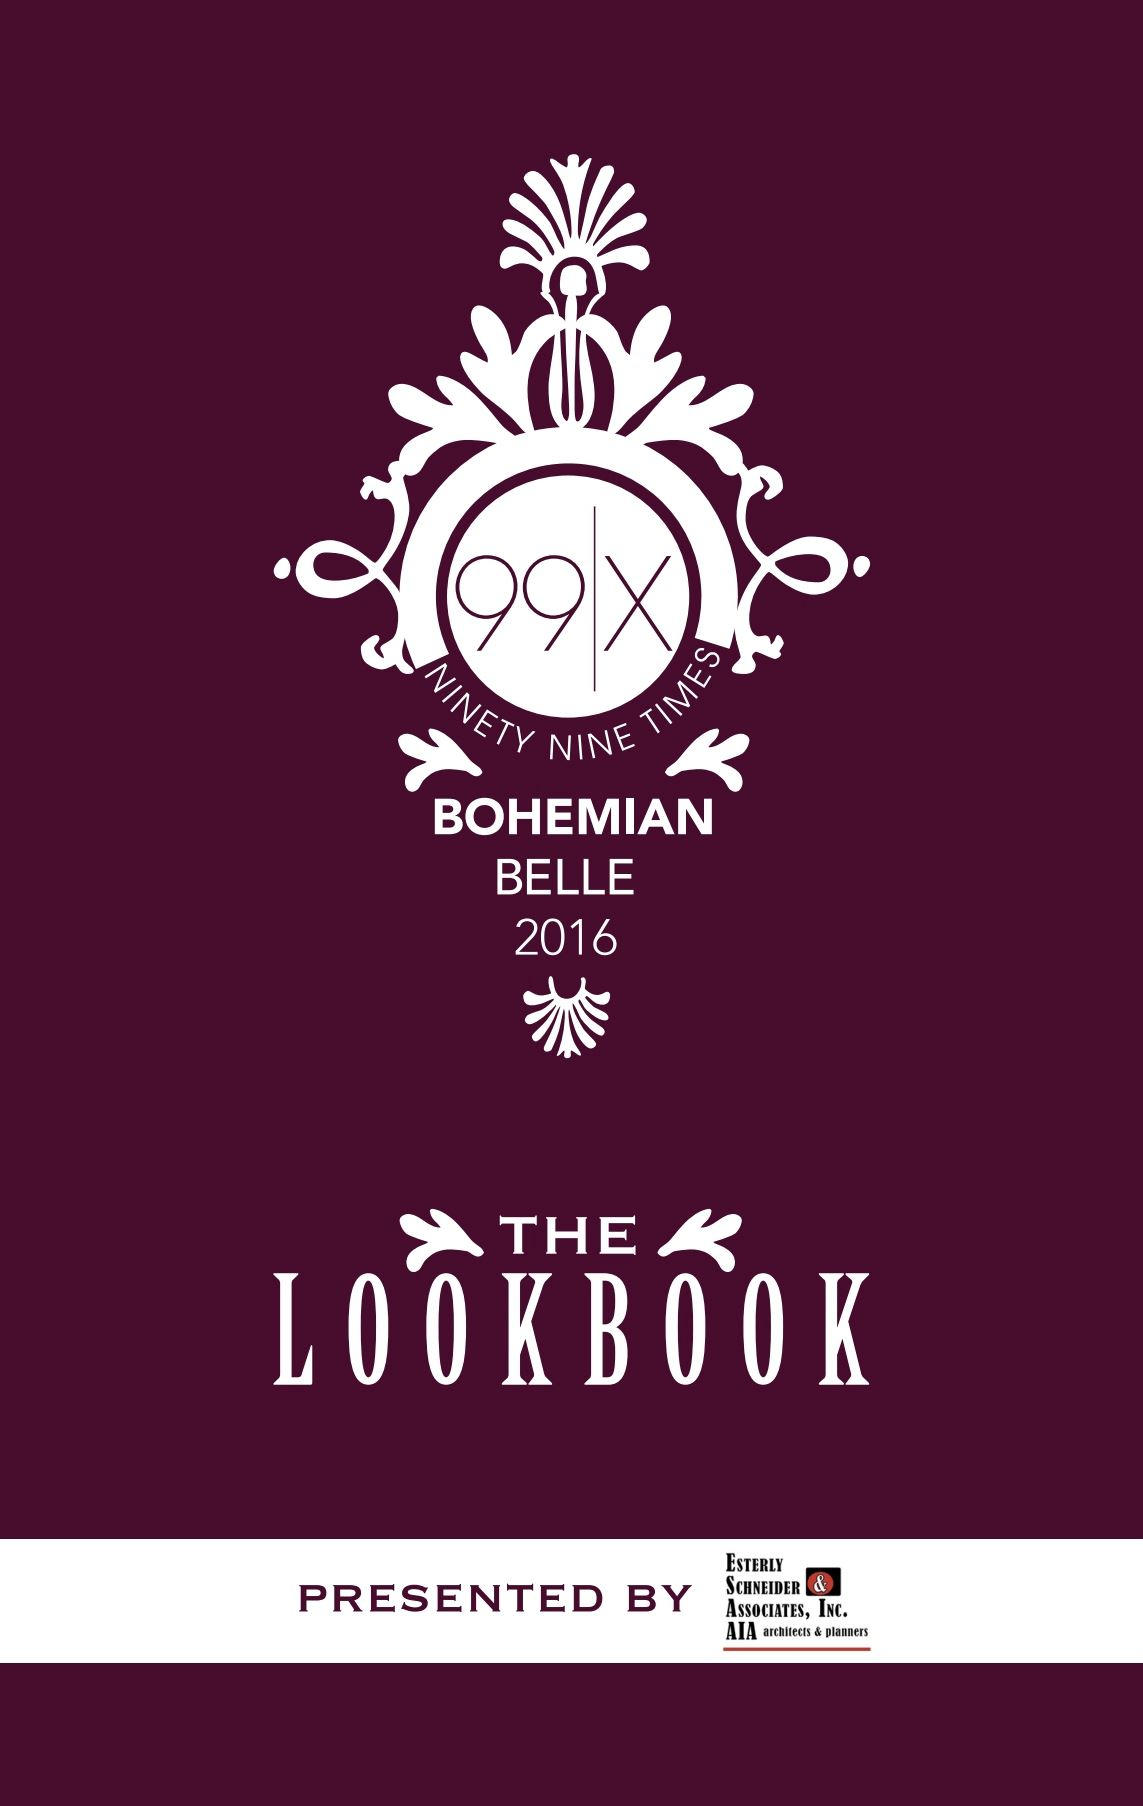 99x Bohemian Belle Look Book Cover